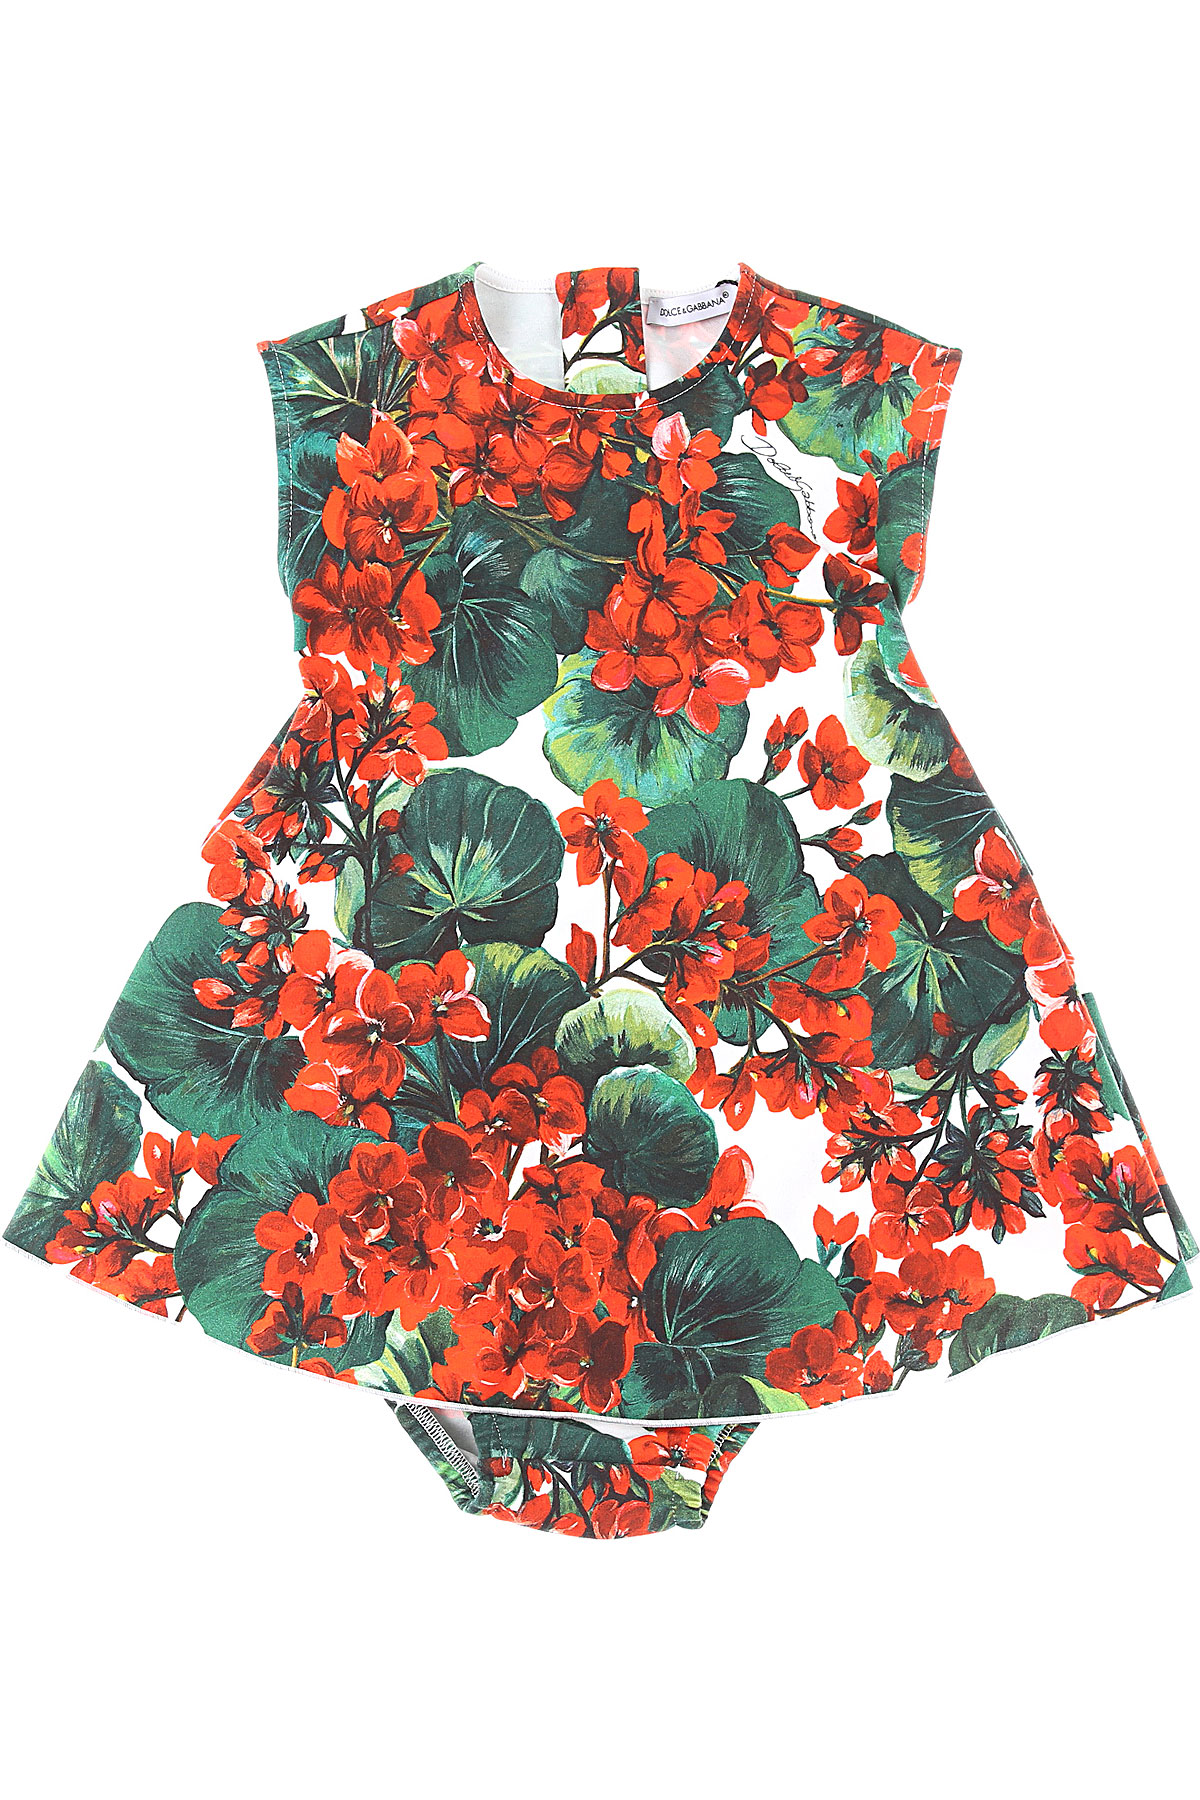 Dolce & Gabbana Baby Sets for Girls On Sale, Red, Cotton, 2019, 12M 18M 24M 30M 9M